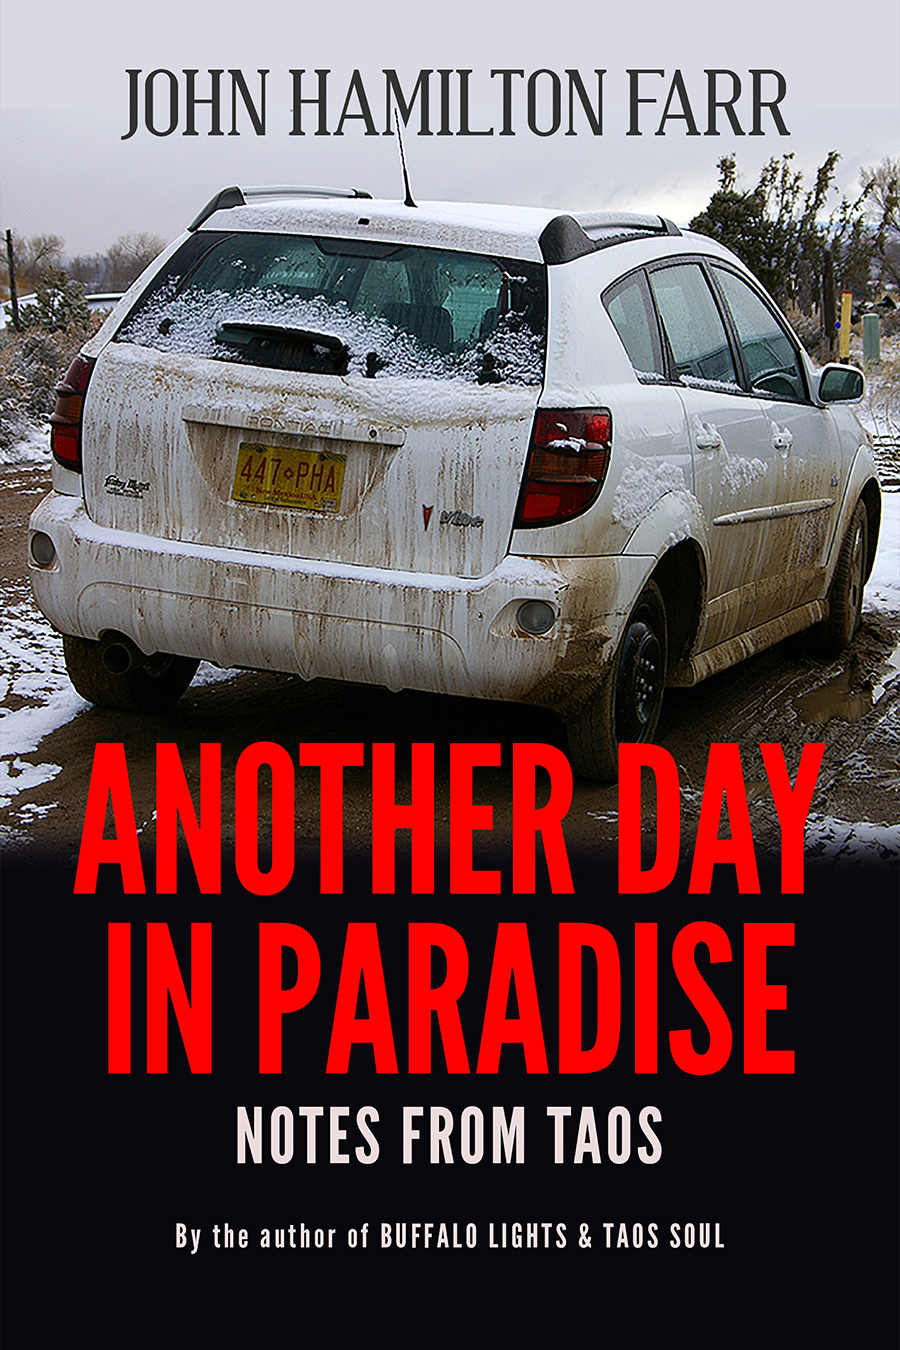 ANOTHER DAY IN PARADISE book cover